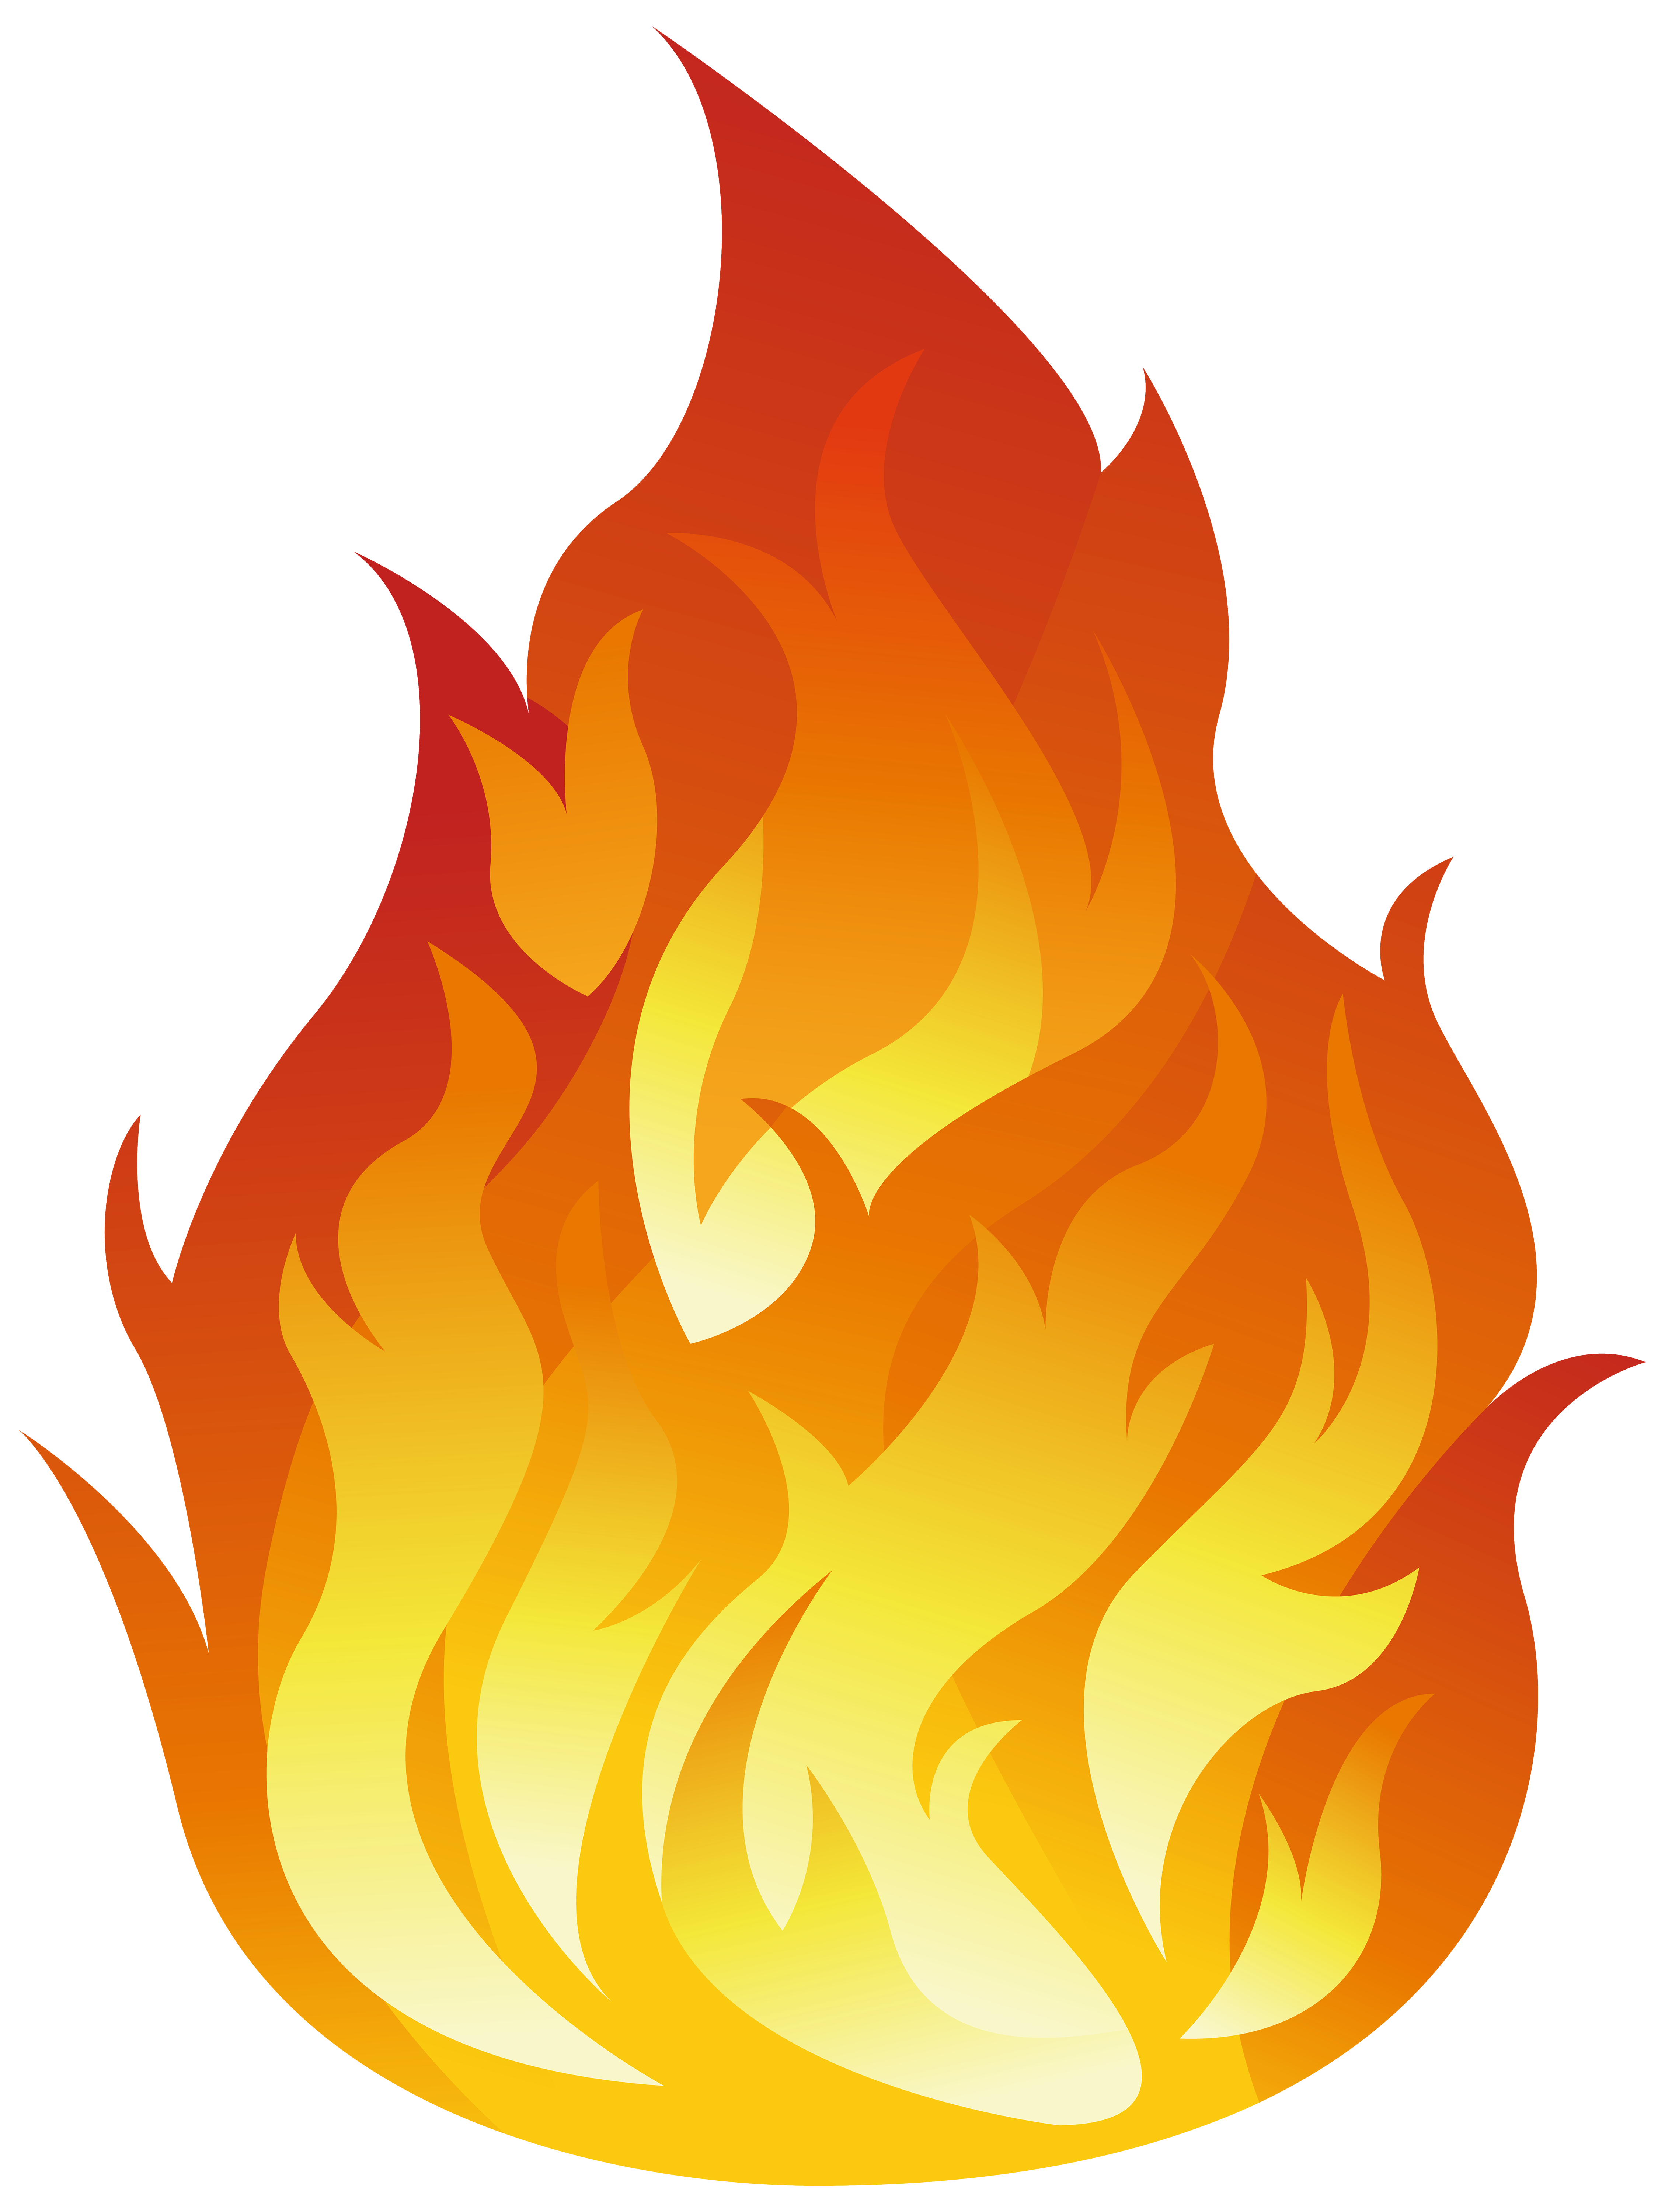 Fire emoji transparent png. Collection of clipart